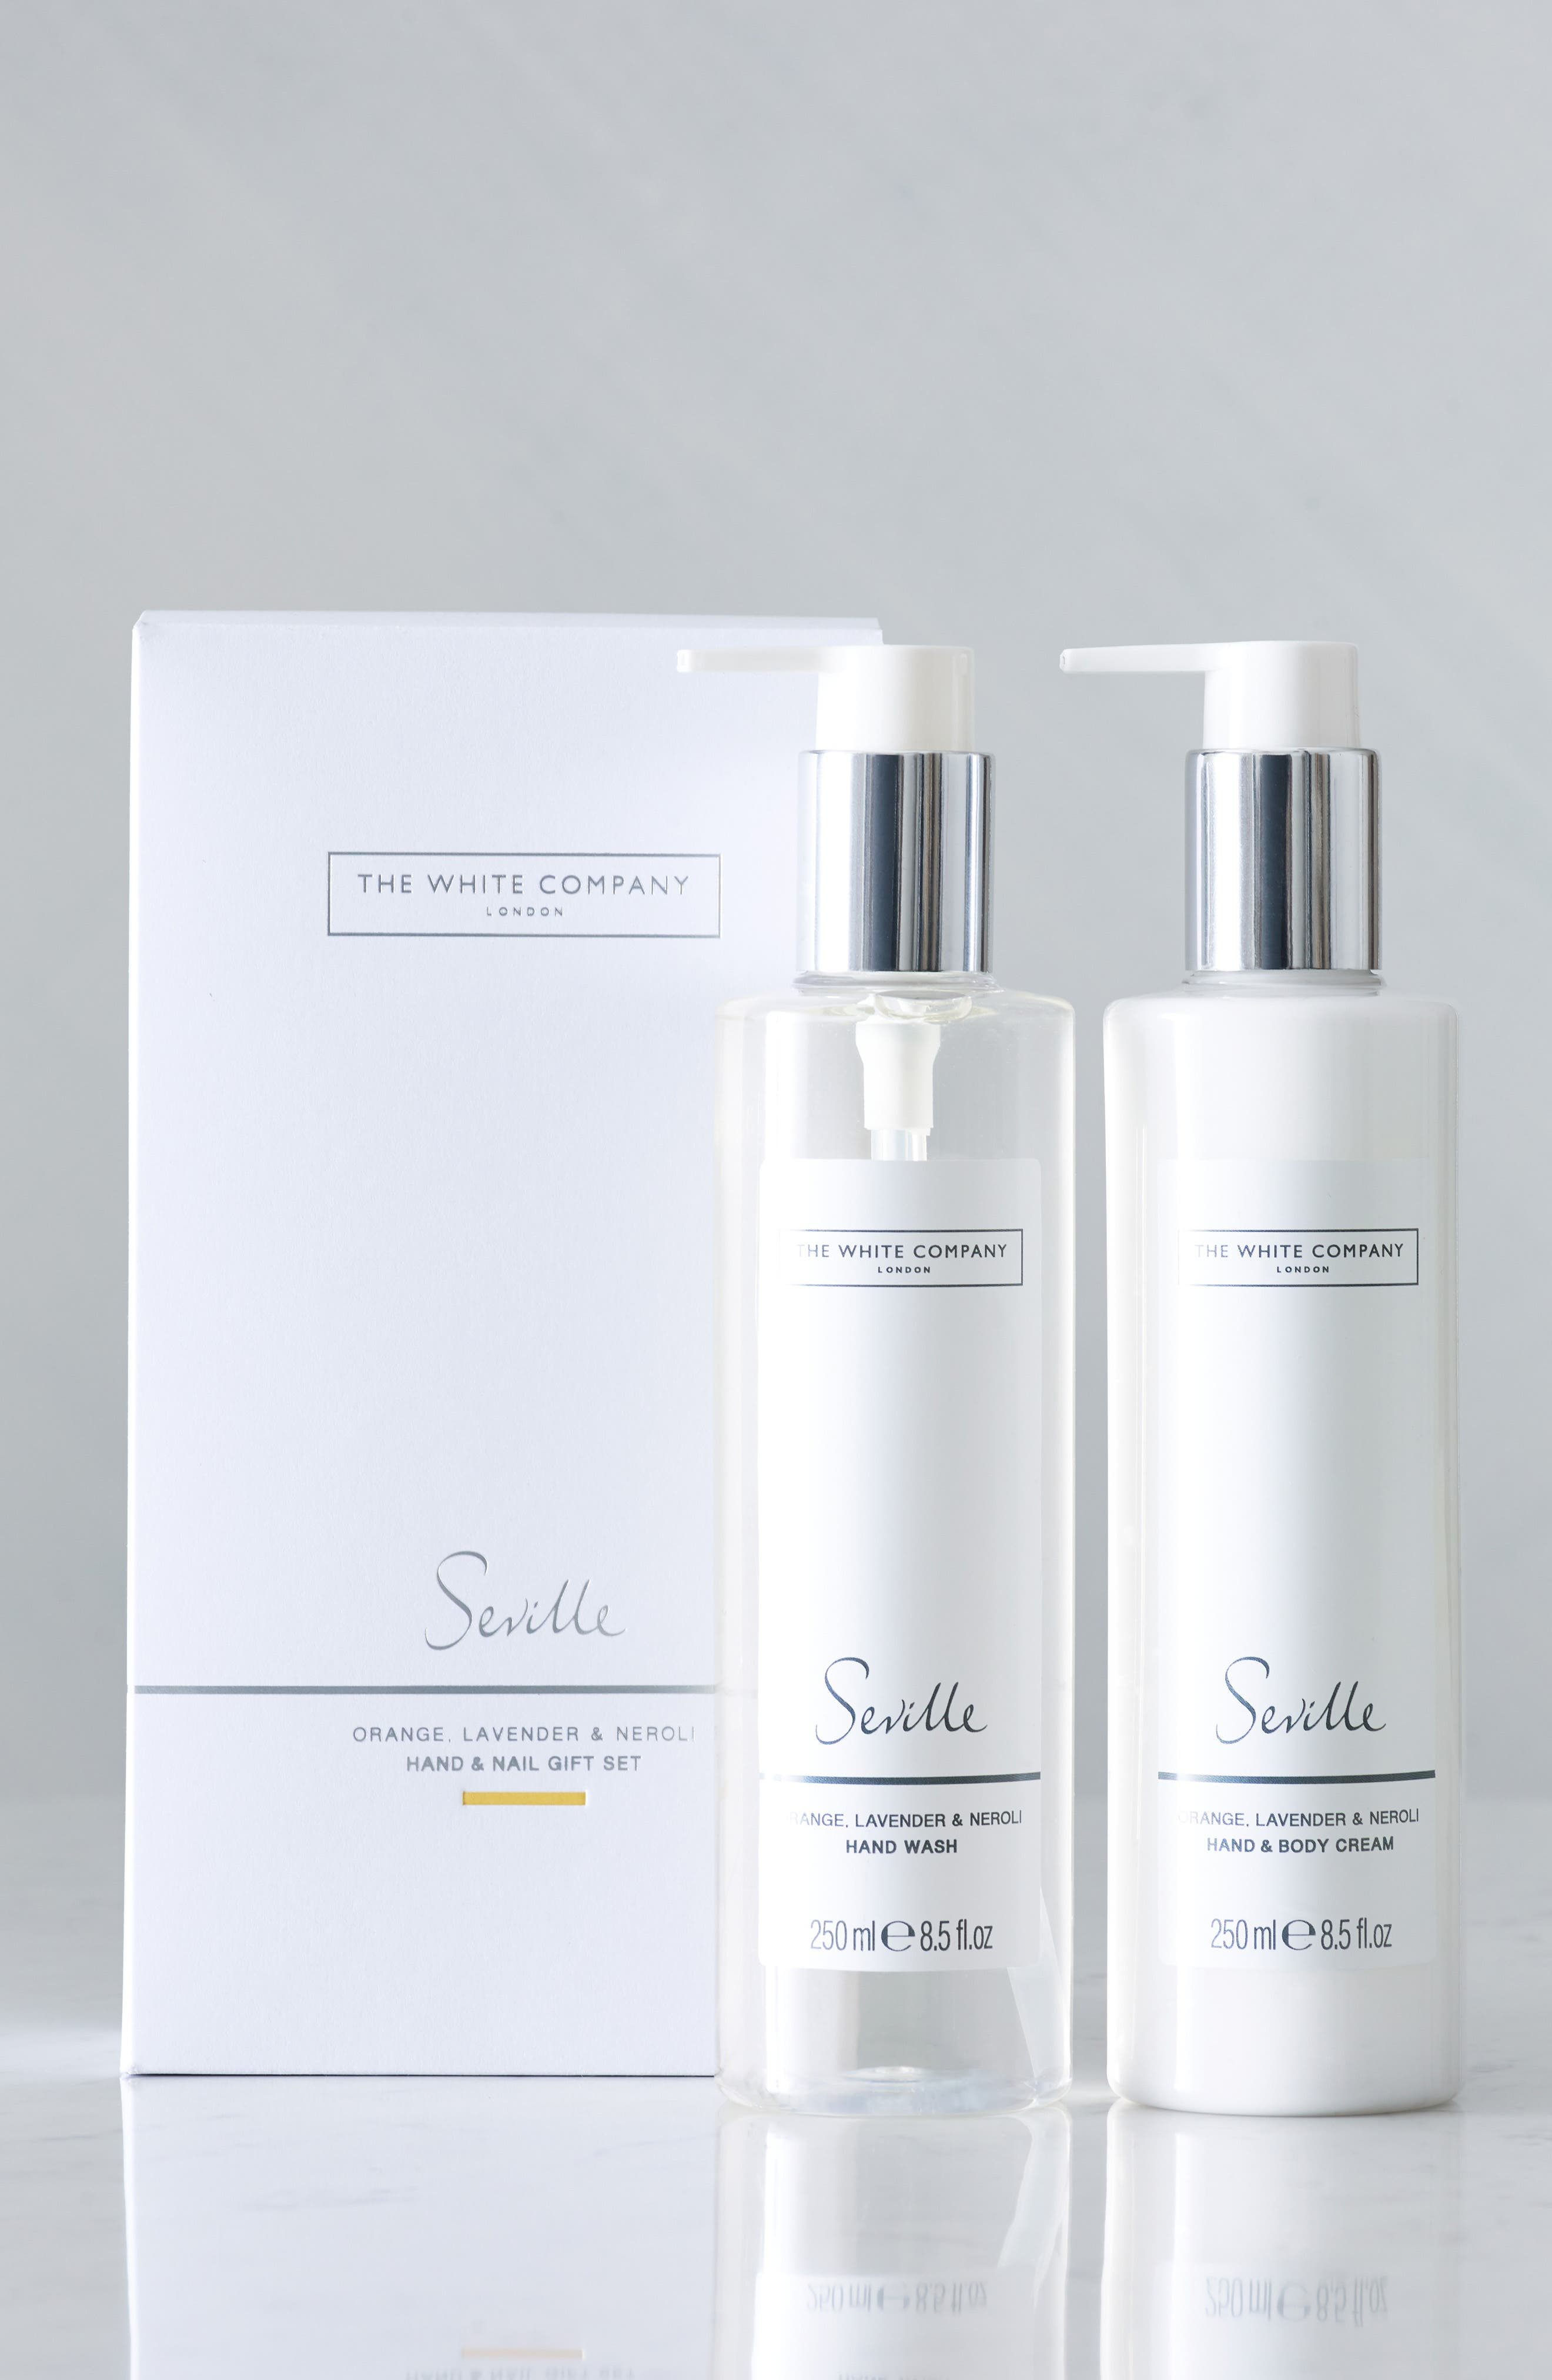 What it is: This set includes a cleansing hand wash and moisturizing hand and body cream, presented in a lovely white gift box. Fragrance story: Like a day when sunlight streams through the windows, Seville is the perfect combination of fresh, zesty orange with wonderfully peaceful, soothing, calming lavender-bliss. Style: Fresh. Set includes:- Seville Hand Wash (8.5 oz.): This foaming hand wash has a gentle but deep cleansing formula that leaves